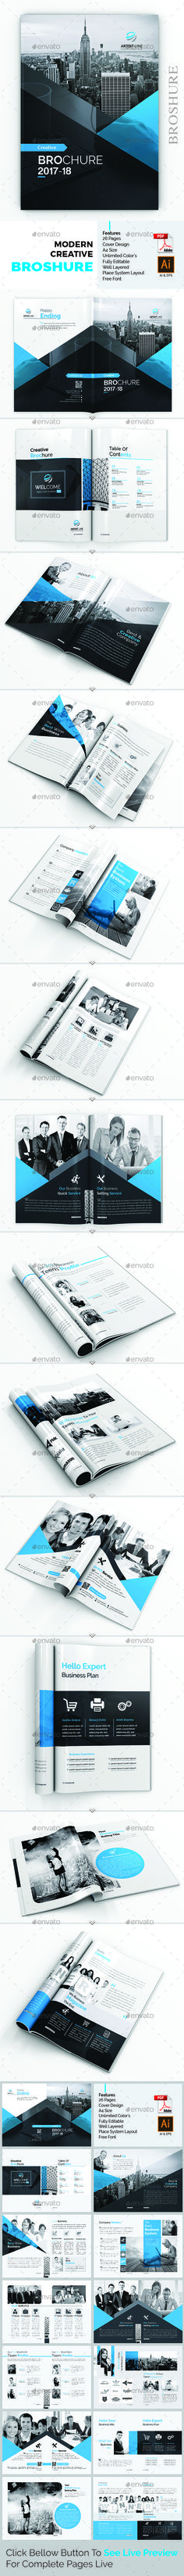 Creative Brochure Template Vector EPS, AI Illustrator